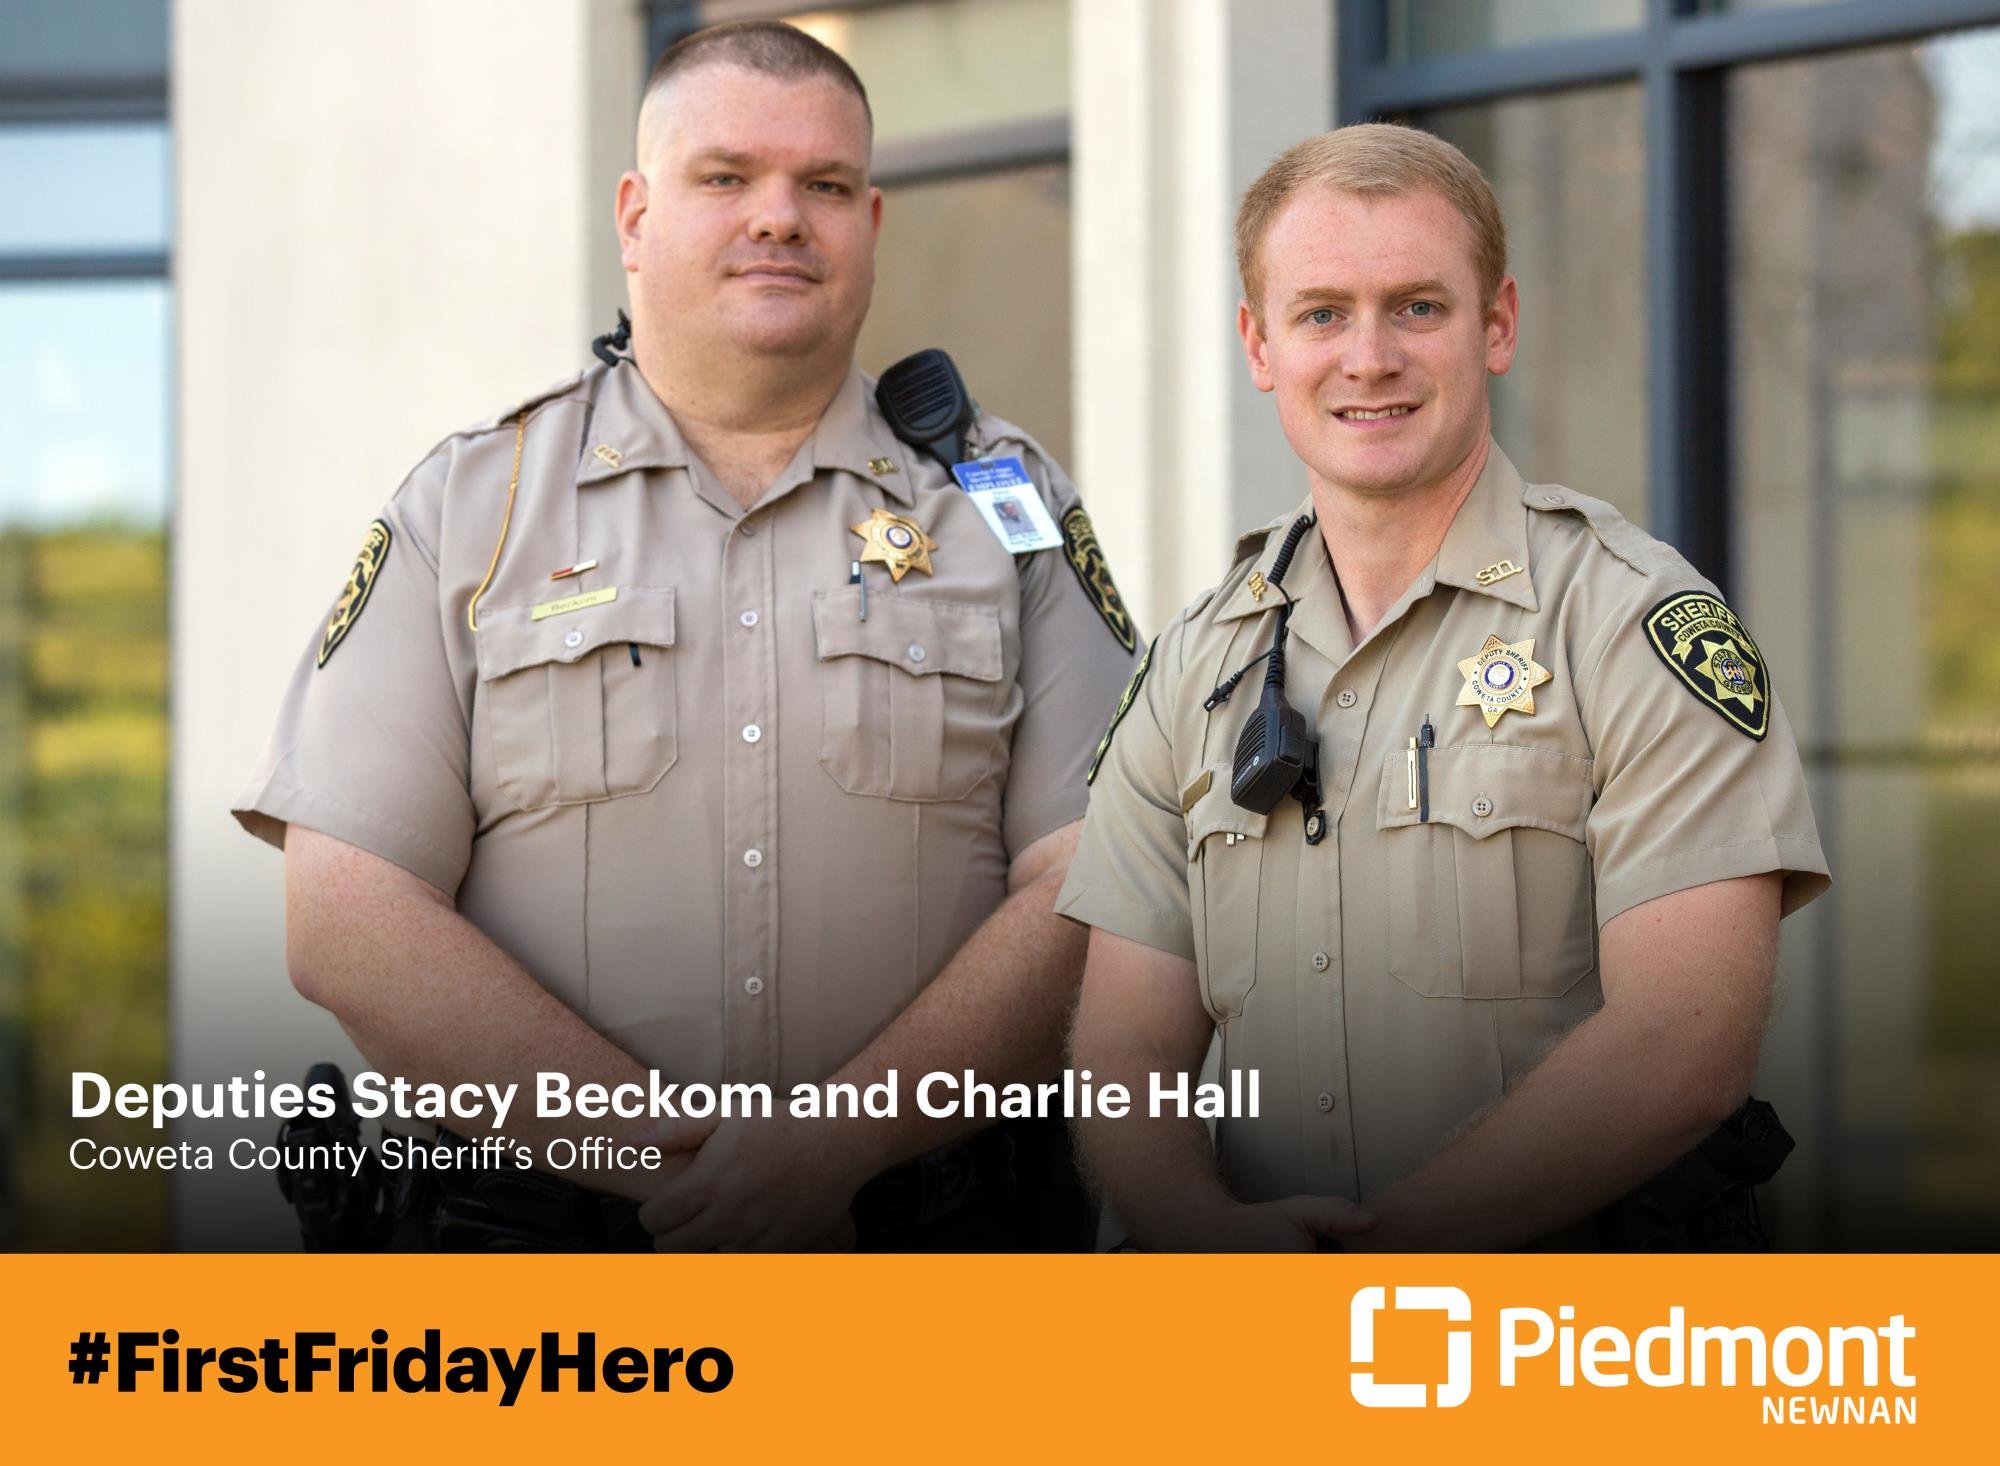 DEPUTIES HONORED AS FIRST FRIDAY HEROES